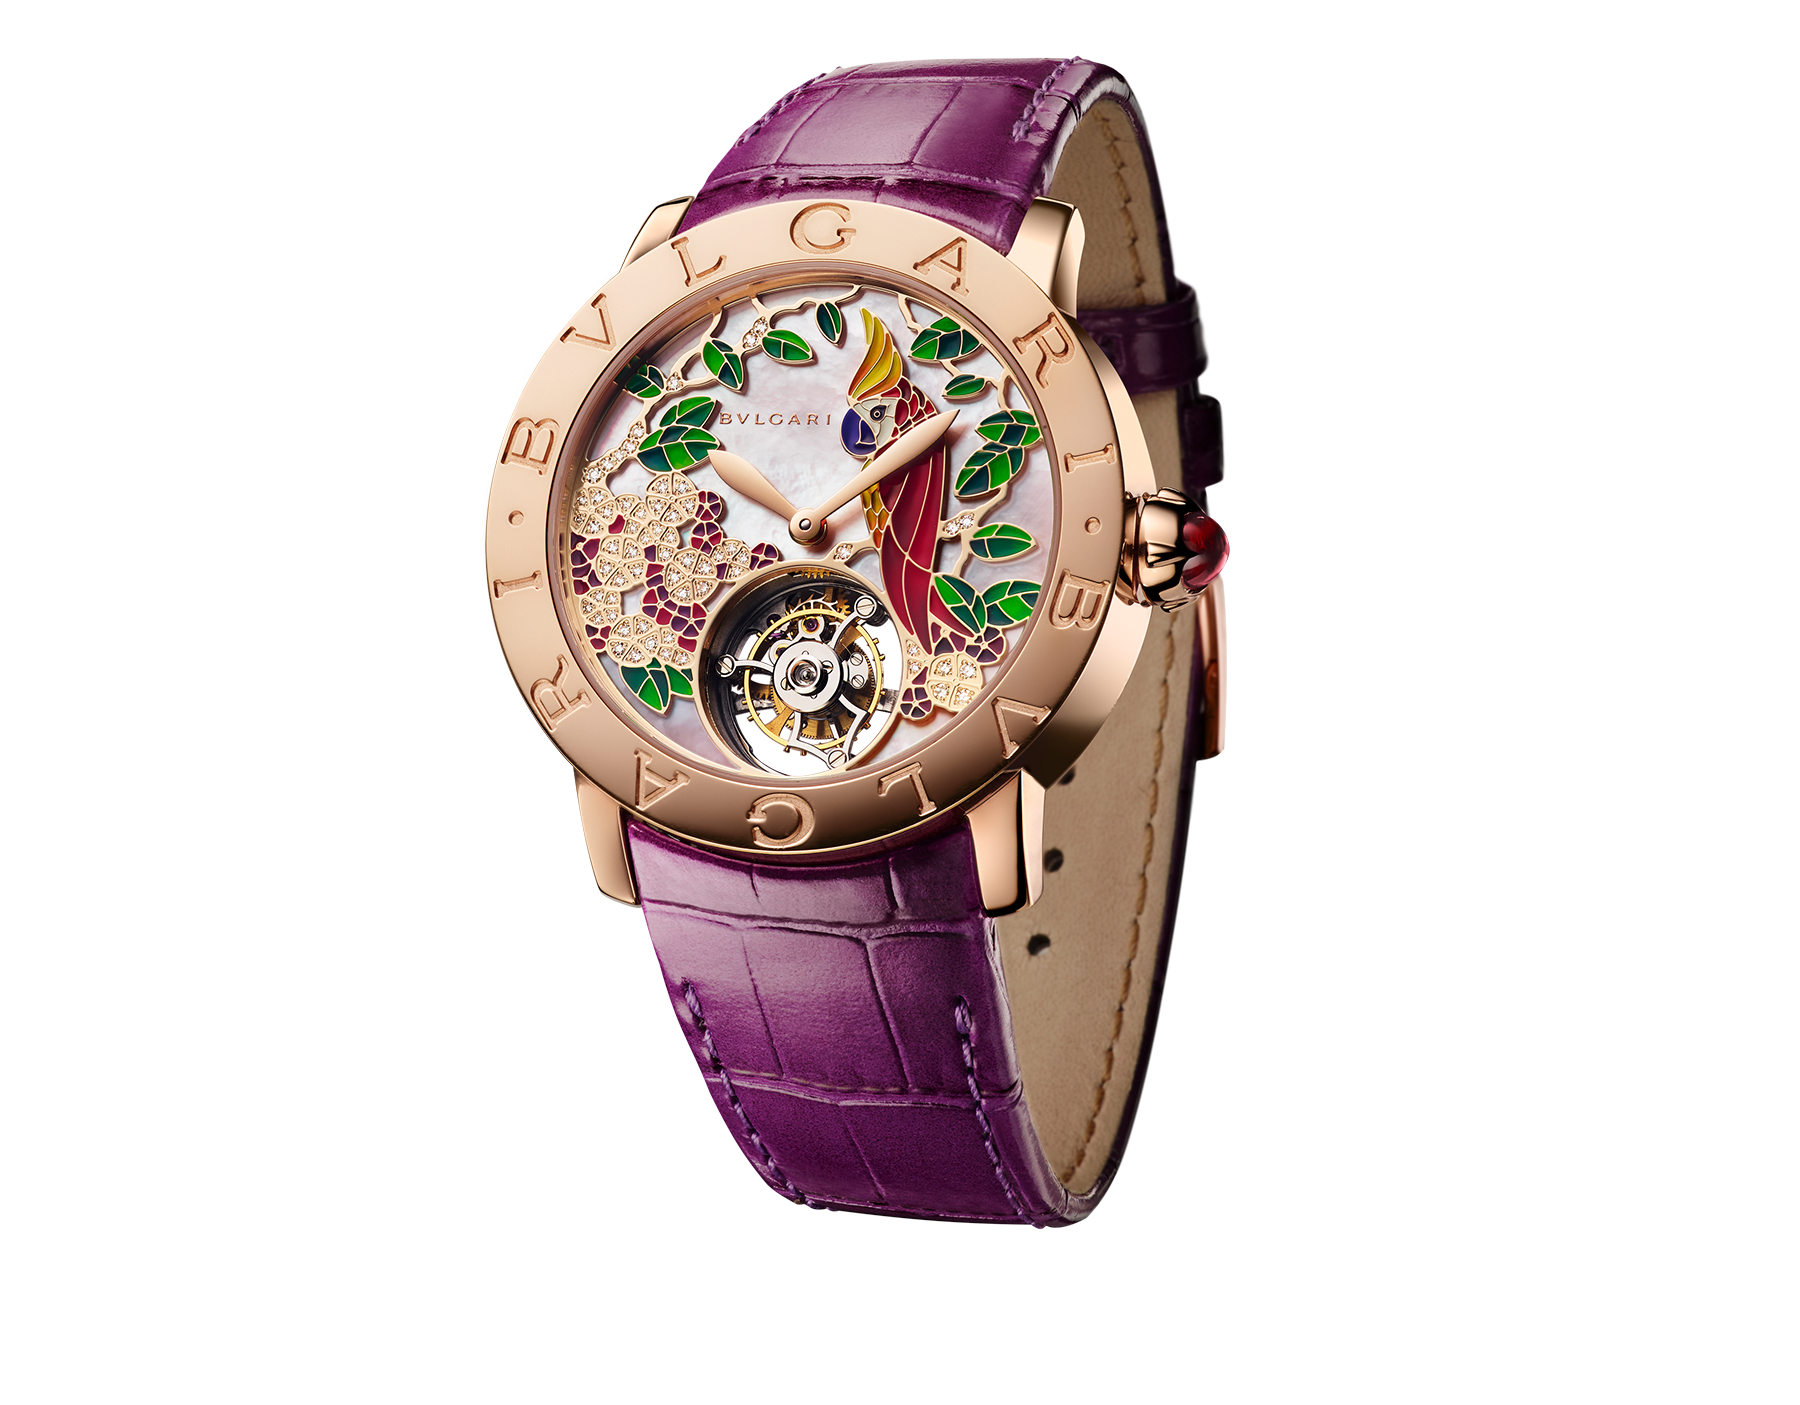 BVLGARI BVLGARI watch with mechanical manufacture movement, automatic winding, see-through tourbillon and sapphire bridge. 18 kt rose gold case, rose mother-of-pearl dial hand-decorated with peinture miniature motifs of a parrot, flowers and leaves, and brilliant parme alligator bracelet 102403 image 1